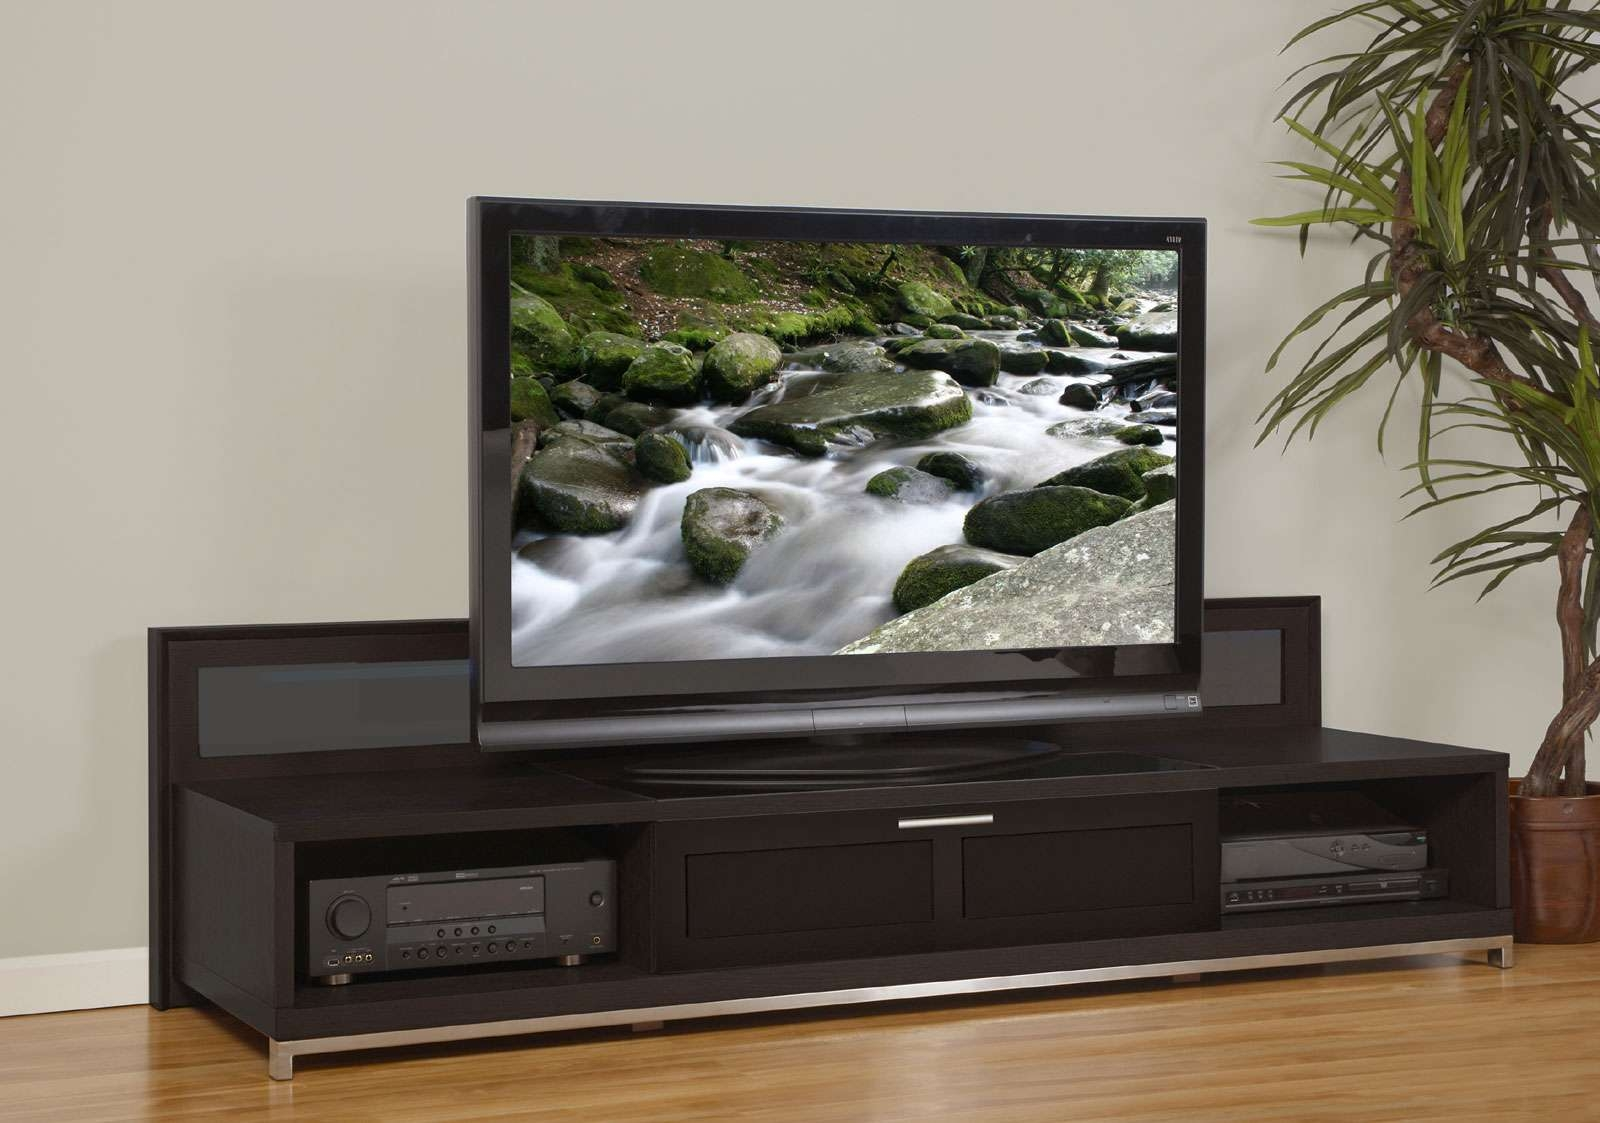 Tv Stands On A Budget Inch Flat Screens Collection Ideas Corner Regarding Corner 60 Inch Tv Stands (View 15 of 15)